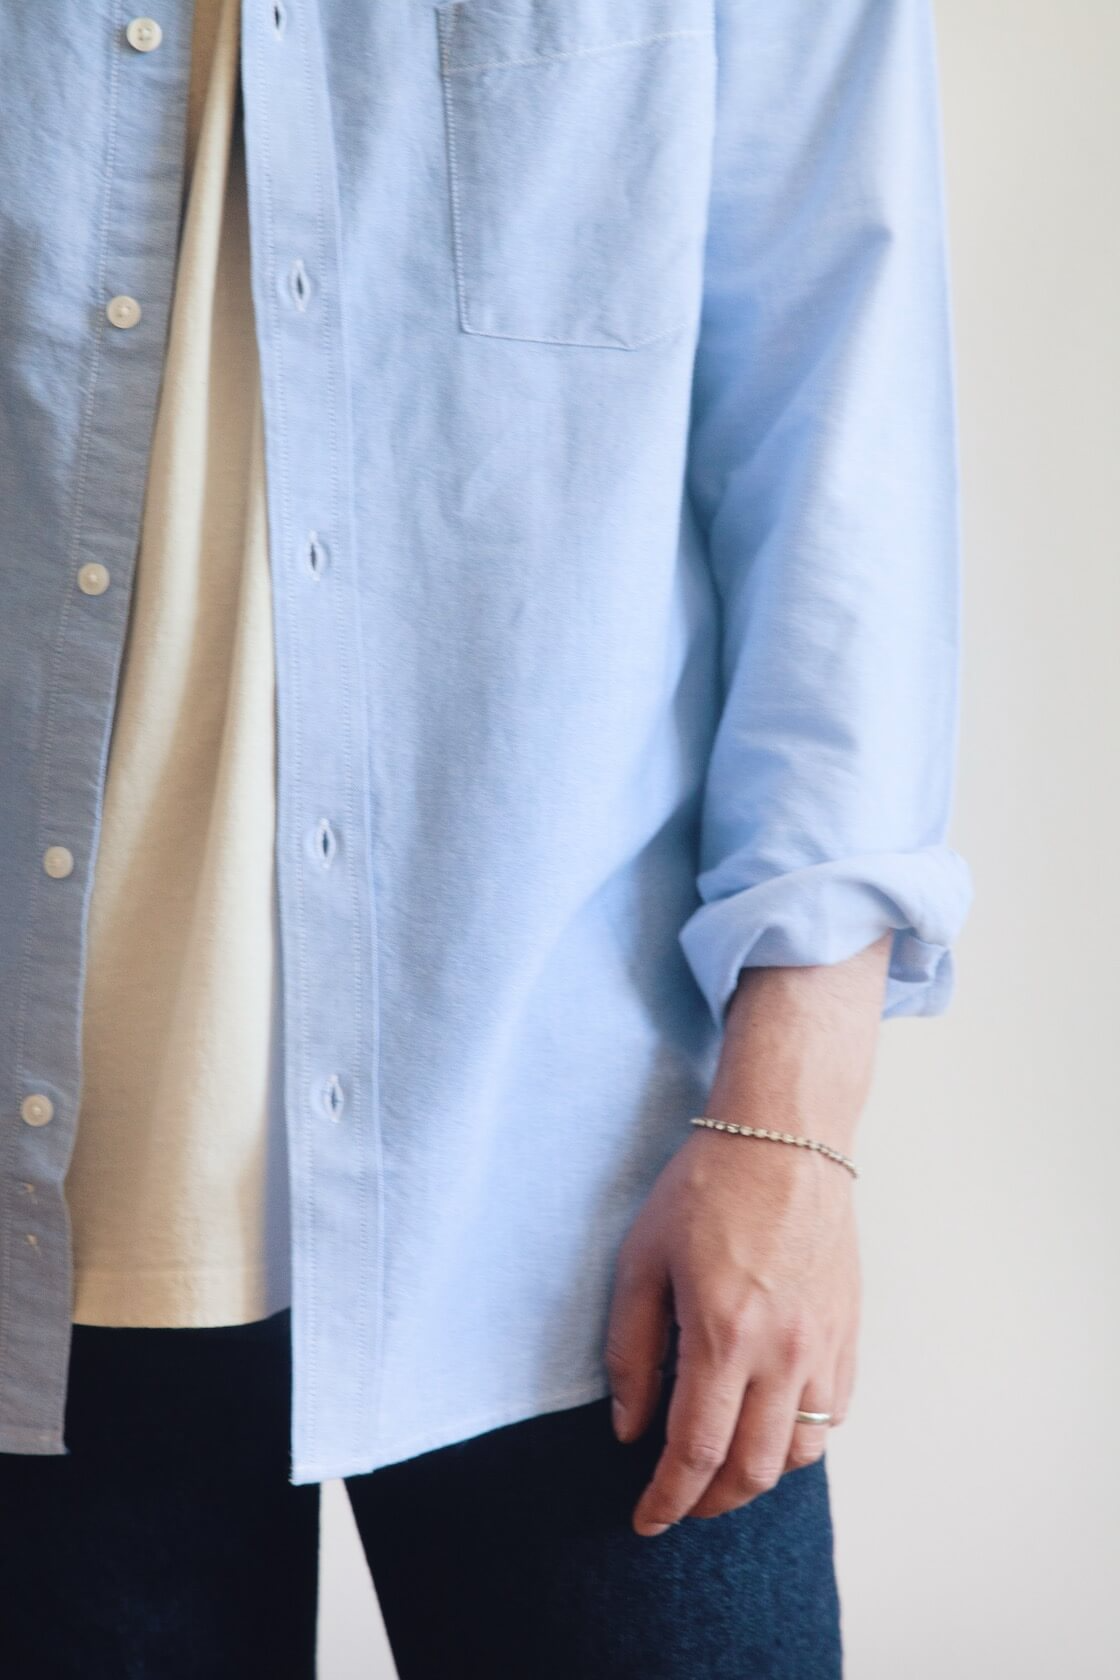 corridor and canoe club oxford shirt, orslow 105 standard denim, lady white co. our t-shirt, and hender scheme mip 18 shoes on body